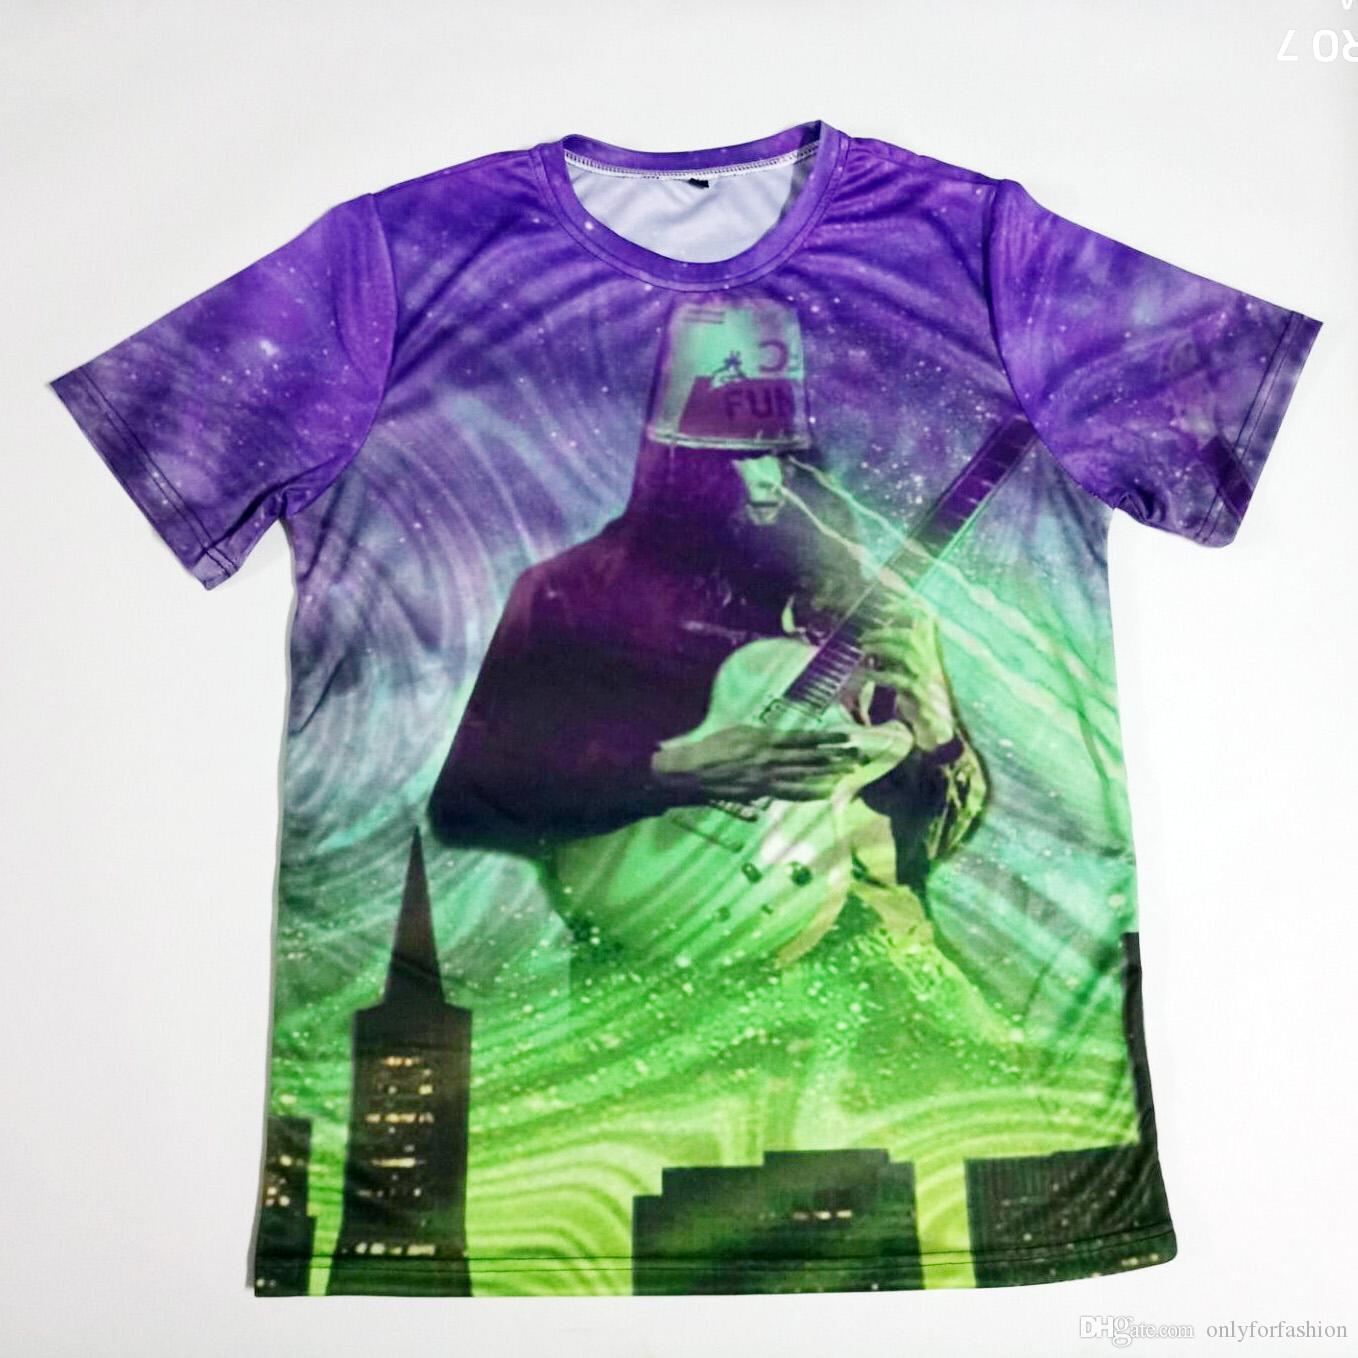 38426f40c Real American USA Size Buckethead Fashion 3D Sublimation Print T Shirt Plus  Size All T Shirt Order Tee Shirts From Onlyforfashion, $15.54| DHgate.Com